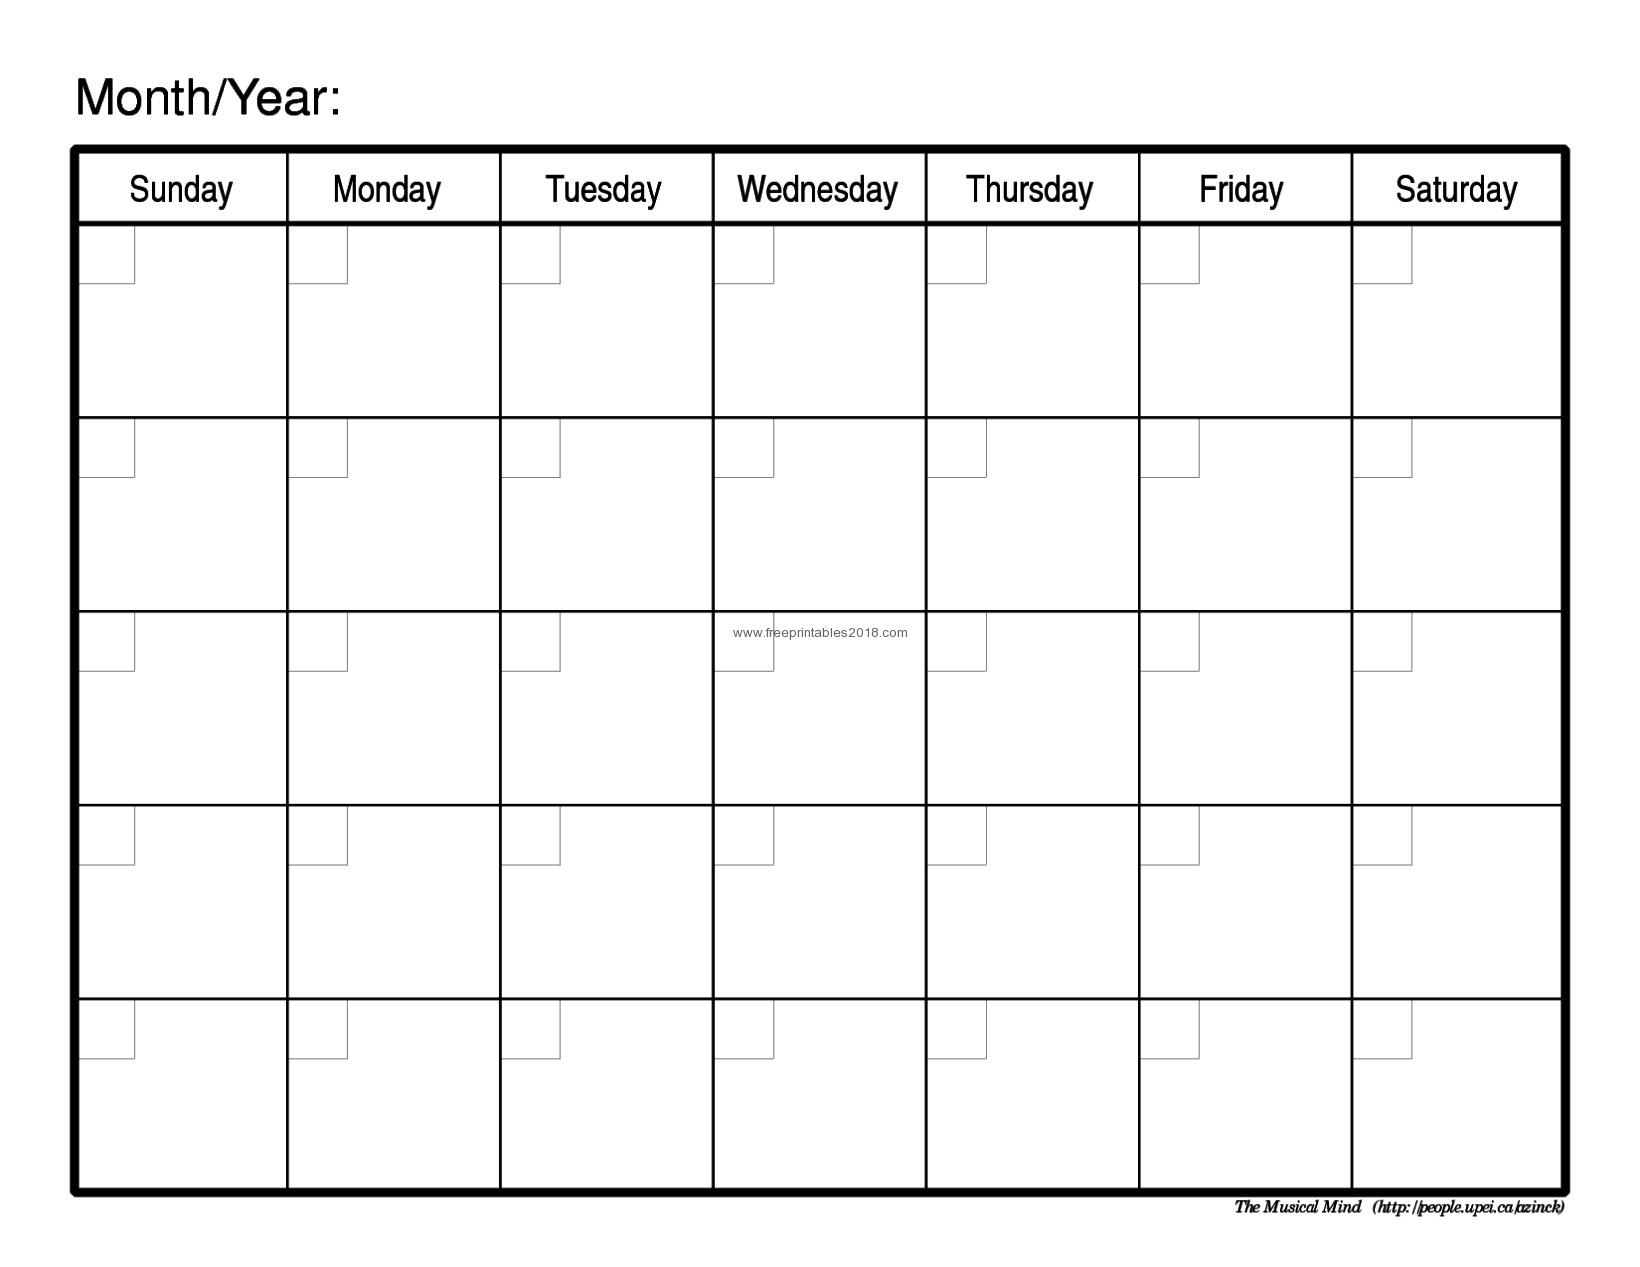 Free Printable Calendar Blank Free Printable Blank Calendar pertaining to Blank Printable Calendar By Month With Notes